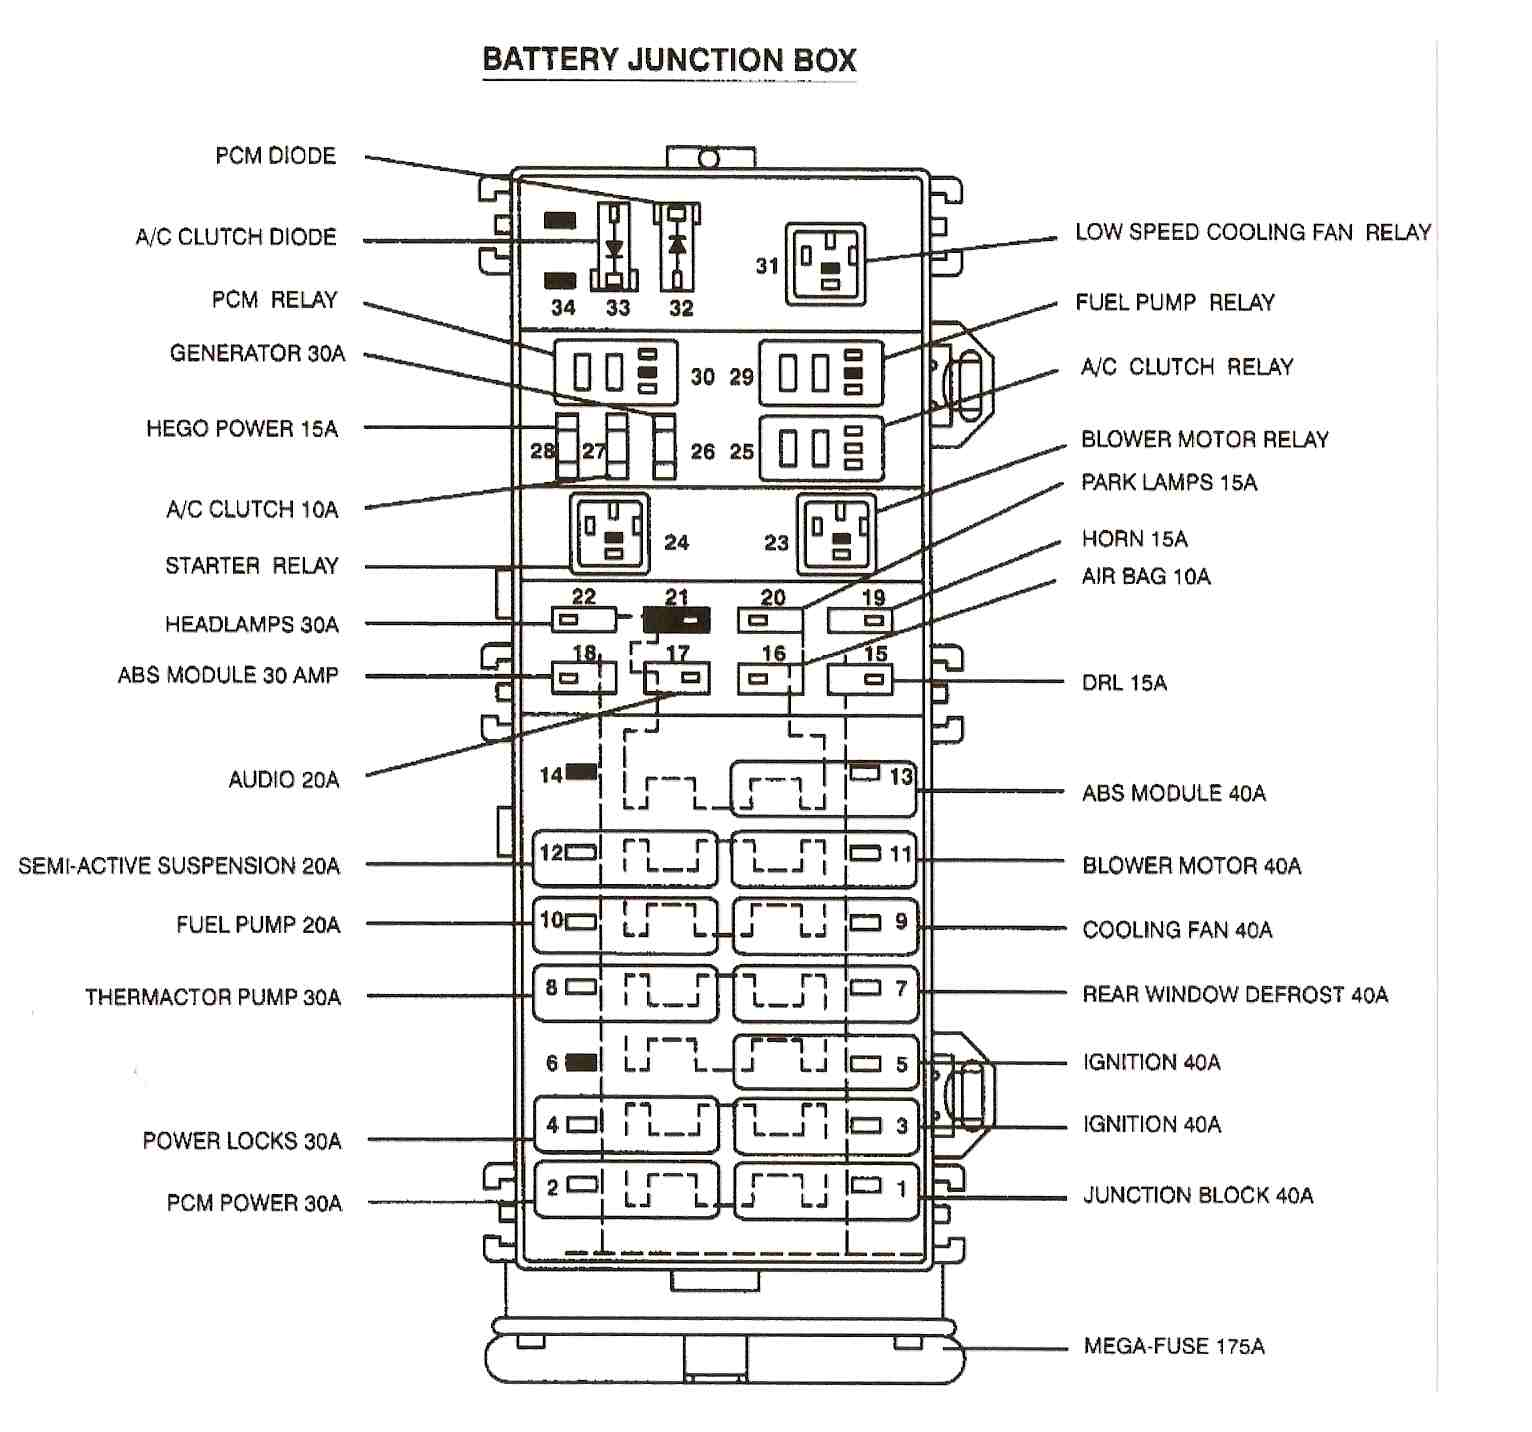 1999 Ford Taurus Se Fuse Box Diagram - 1991 Dodge Fuse Box -  yjm308.cukk.jeanjaures37.frWiring Diagram Resource